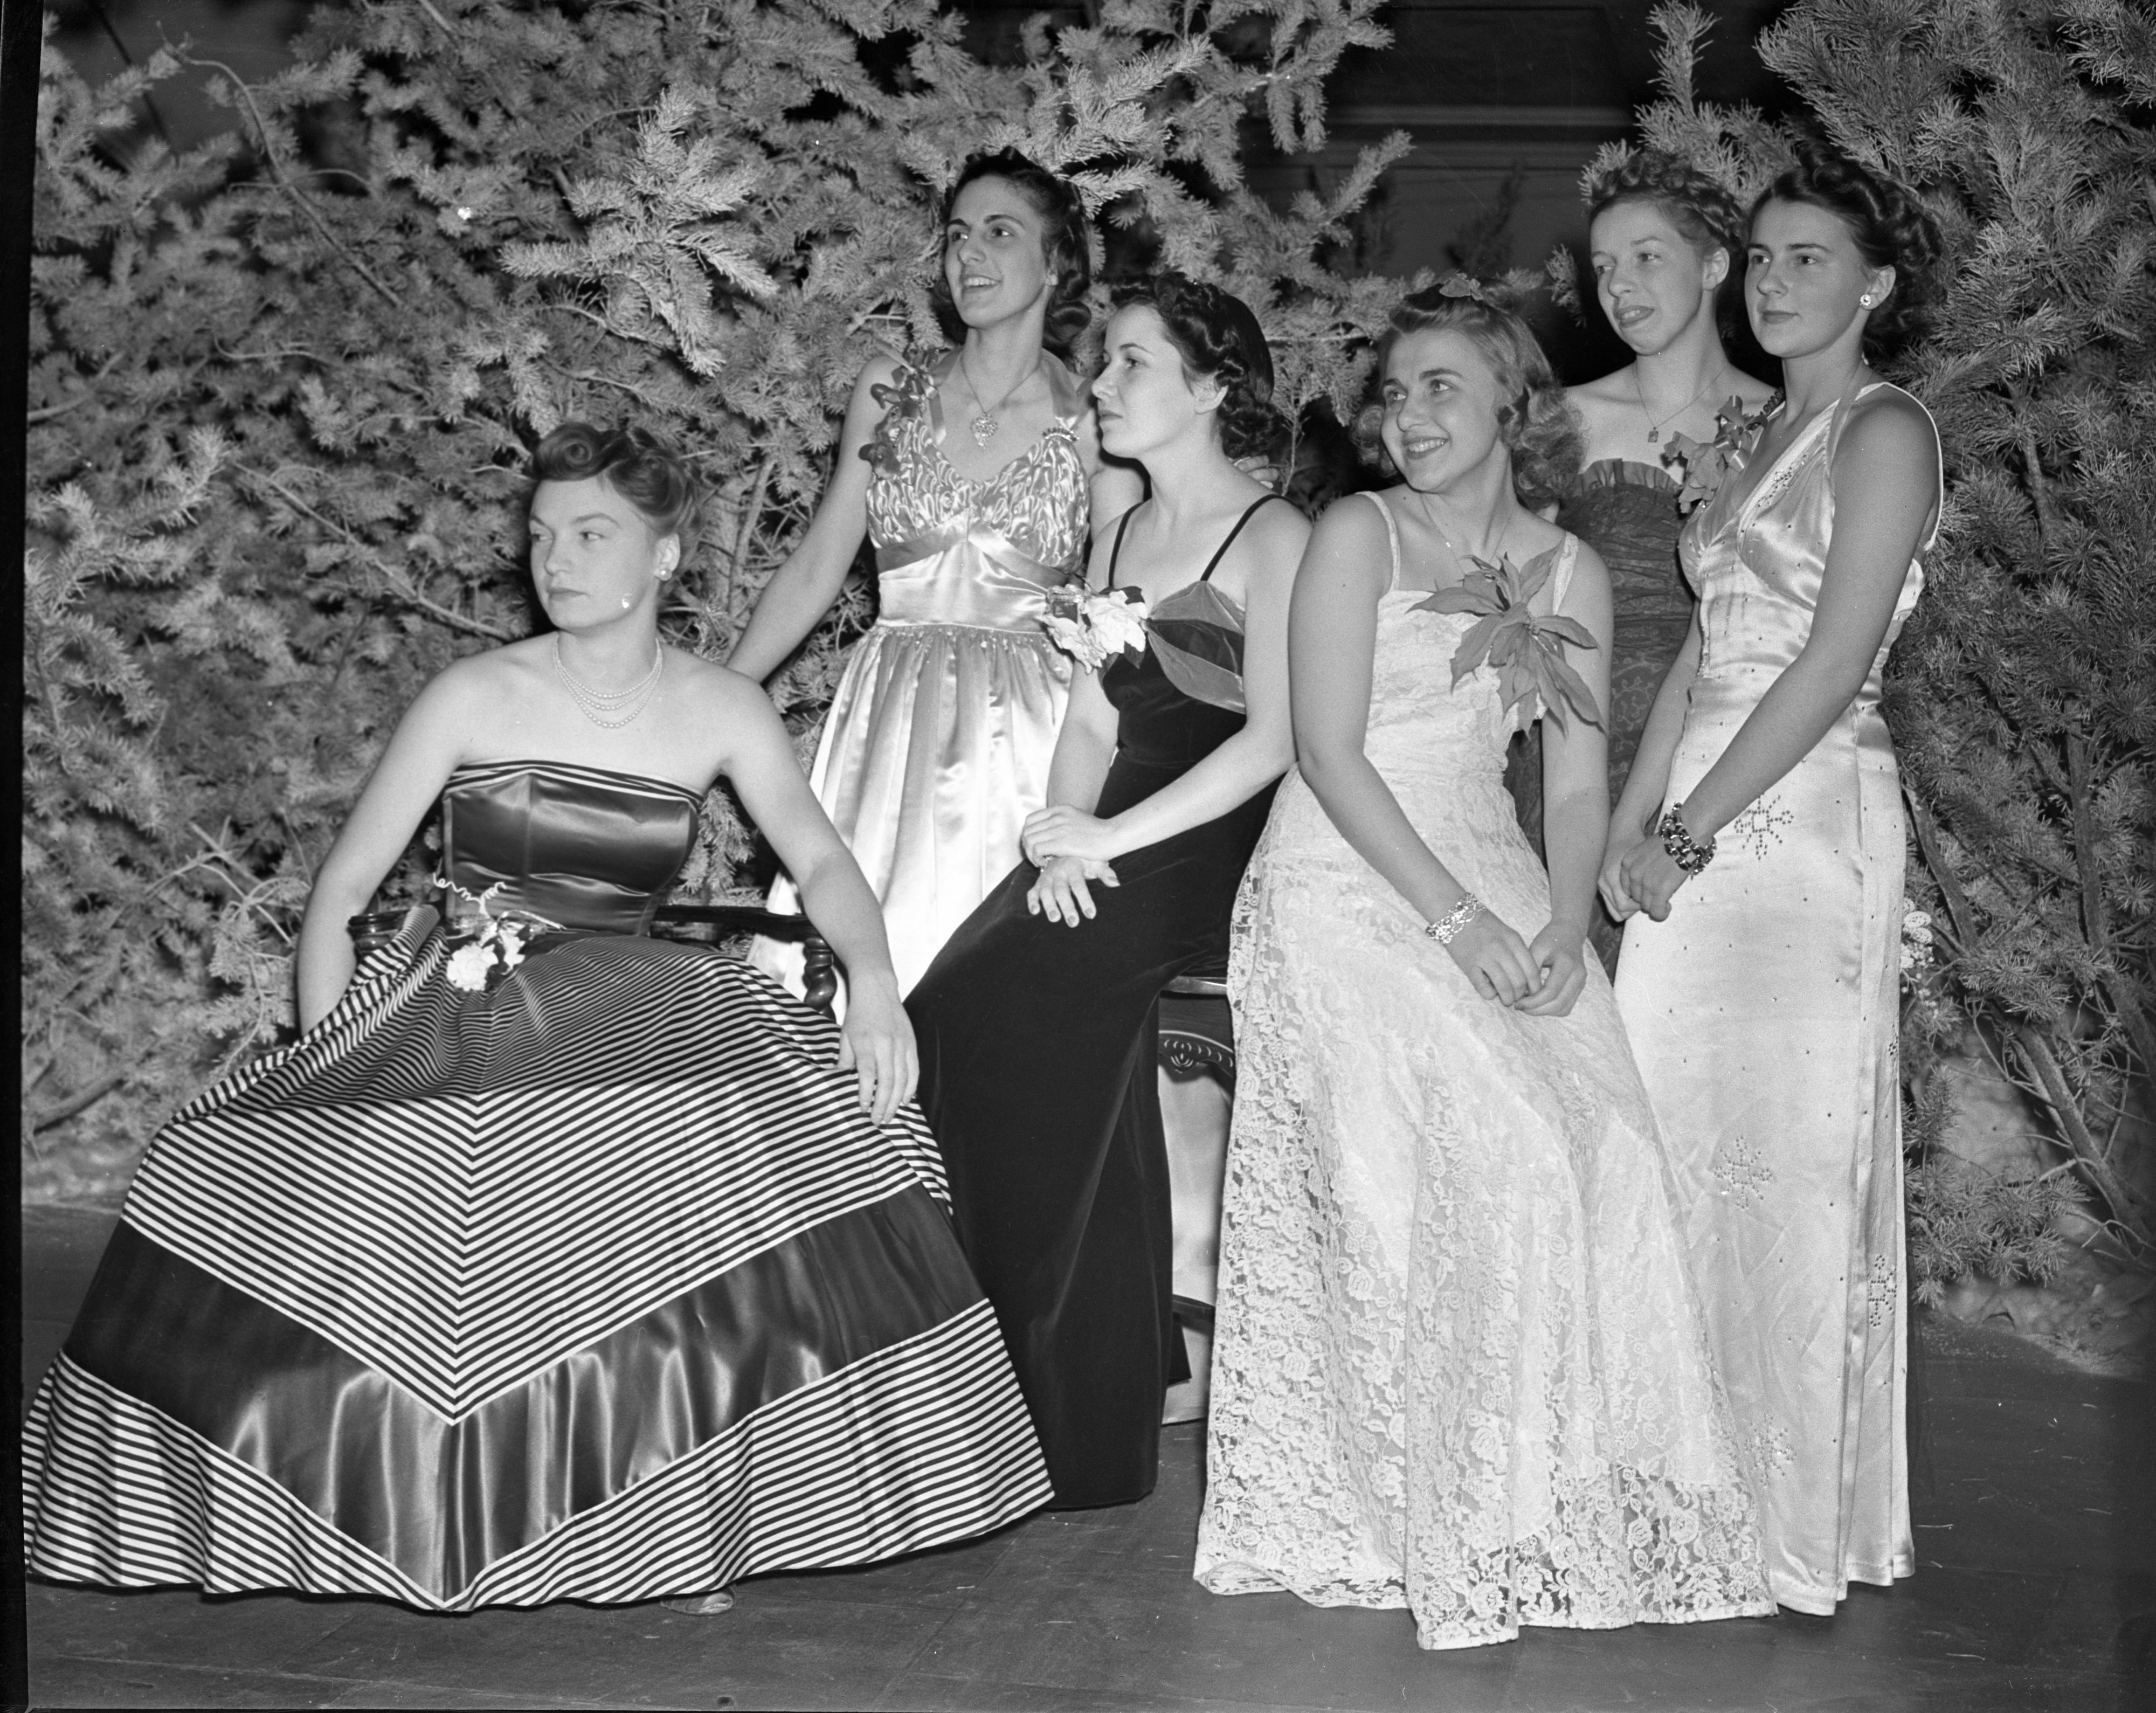 Holiday Dance Hostesses, December 1938 image